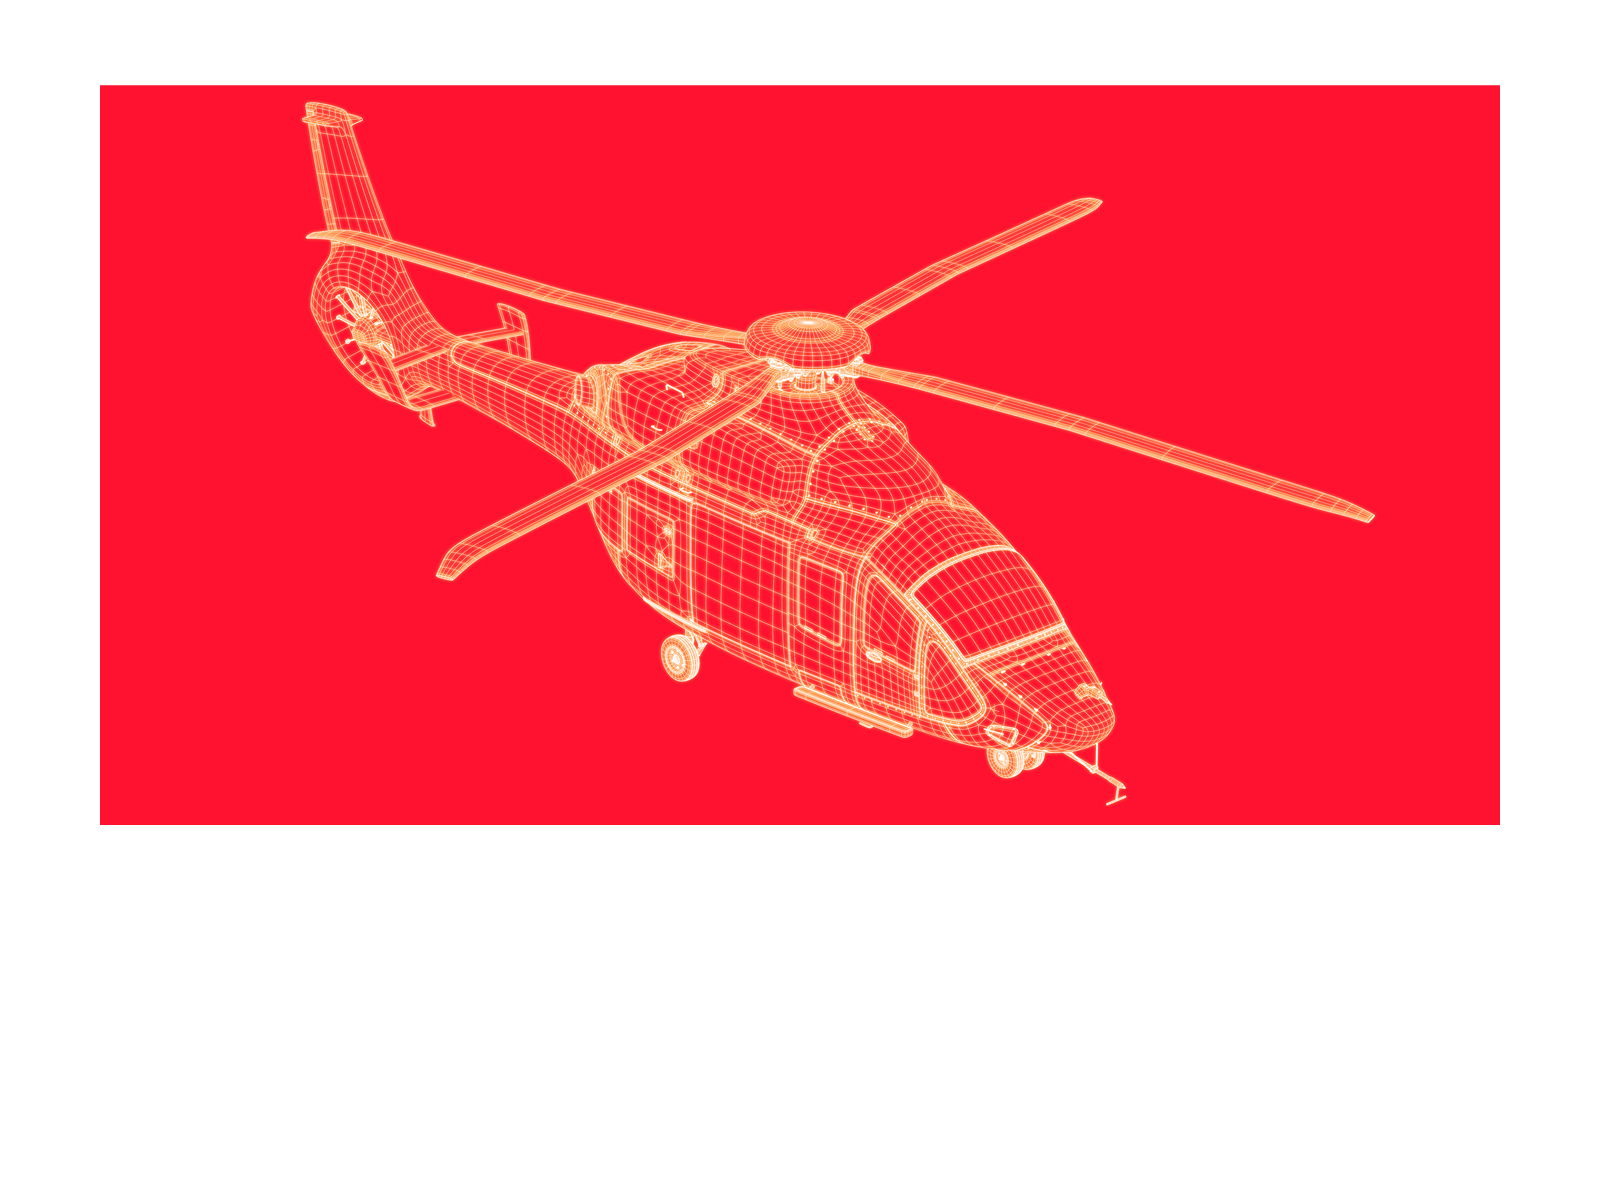 Jean-pascal-DONNOT-illustration-helicoptere-filaire